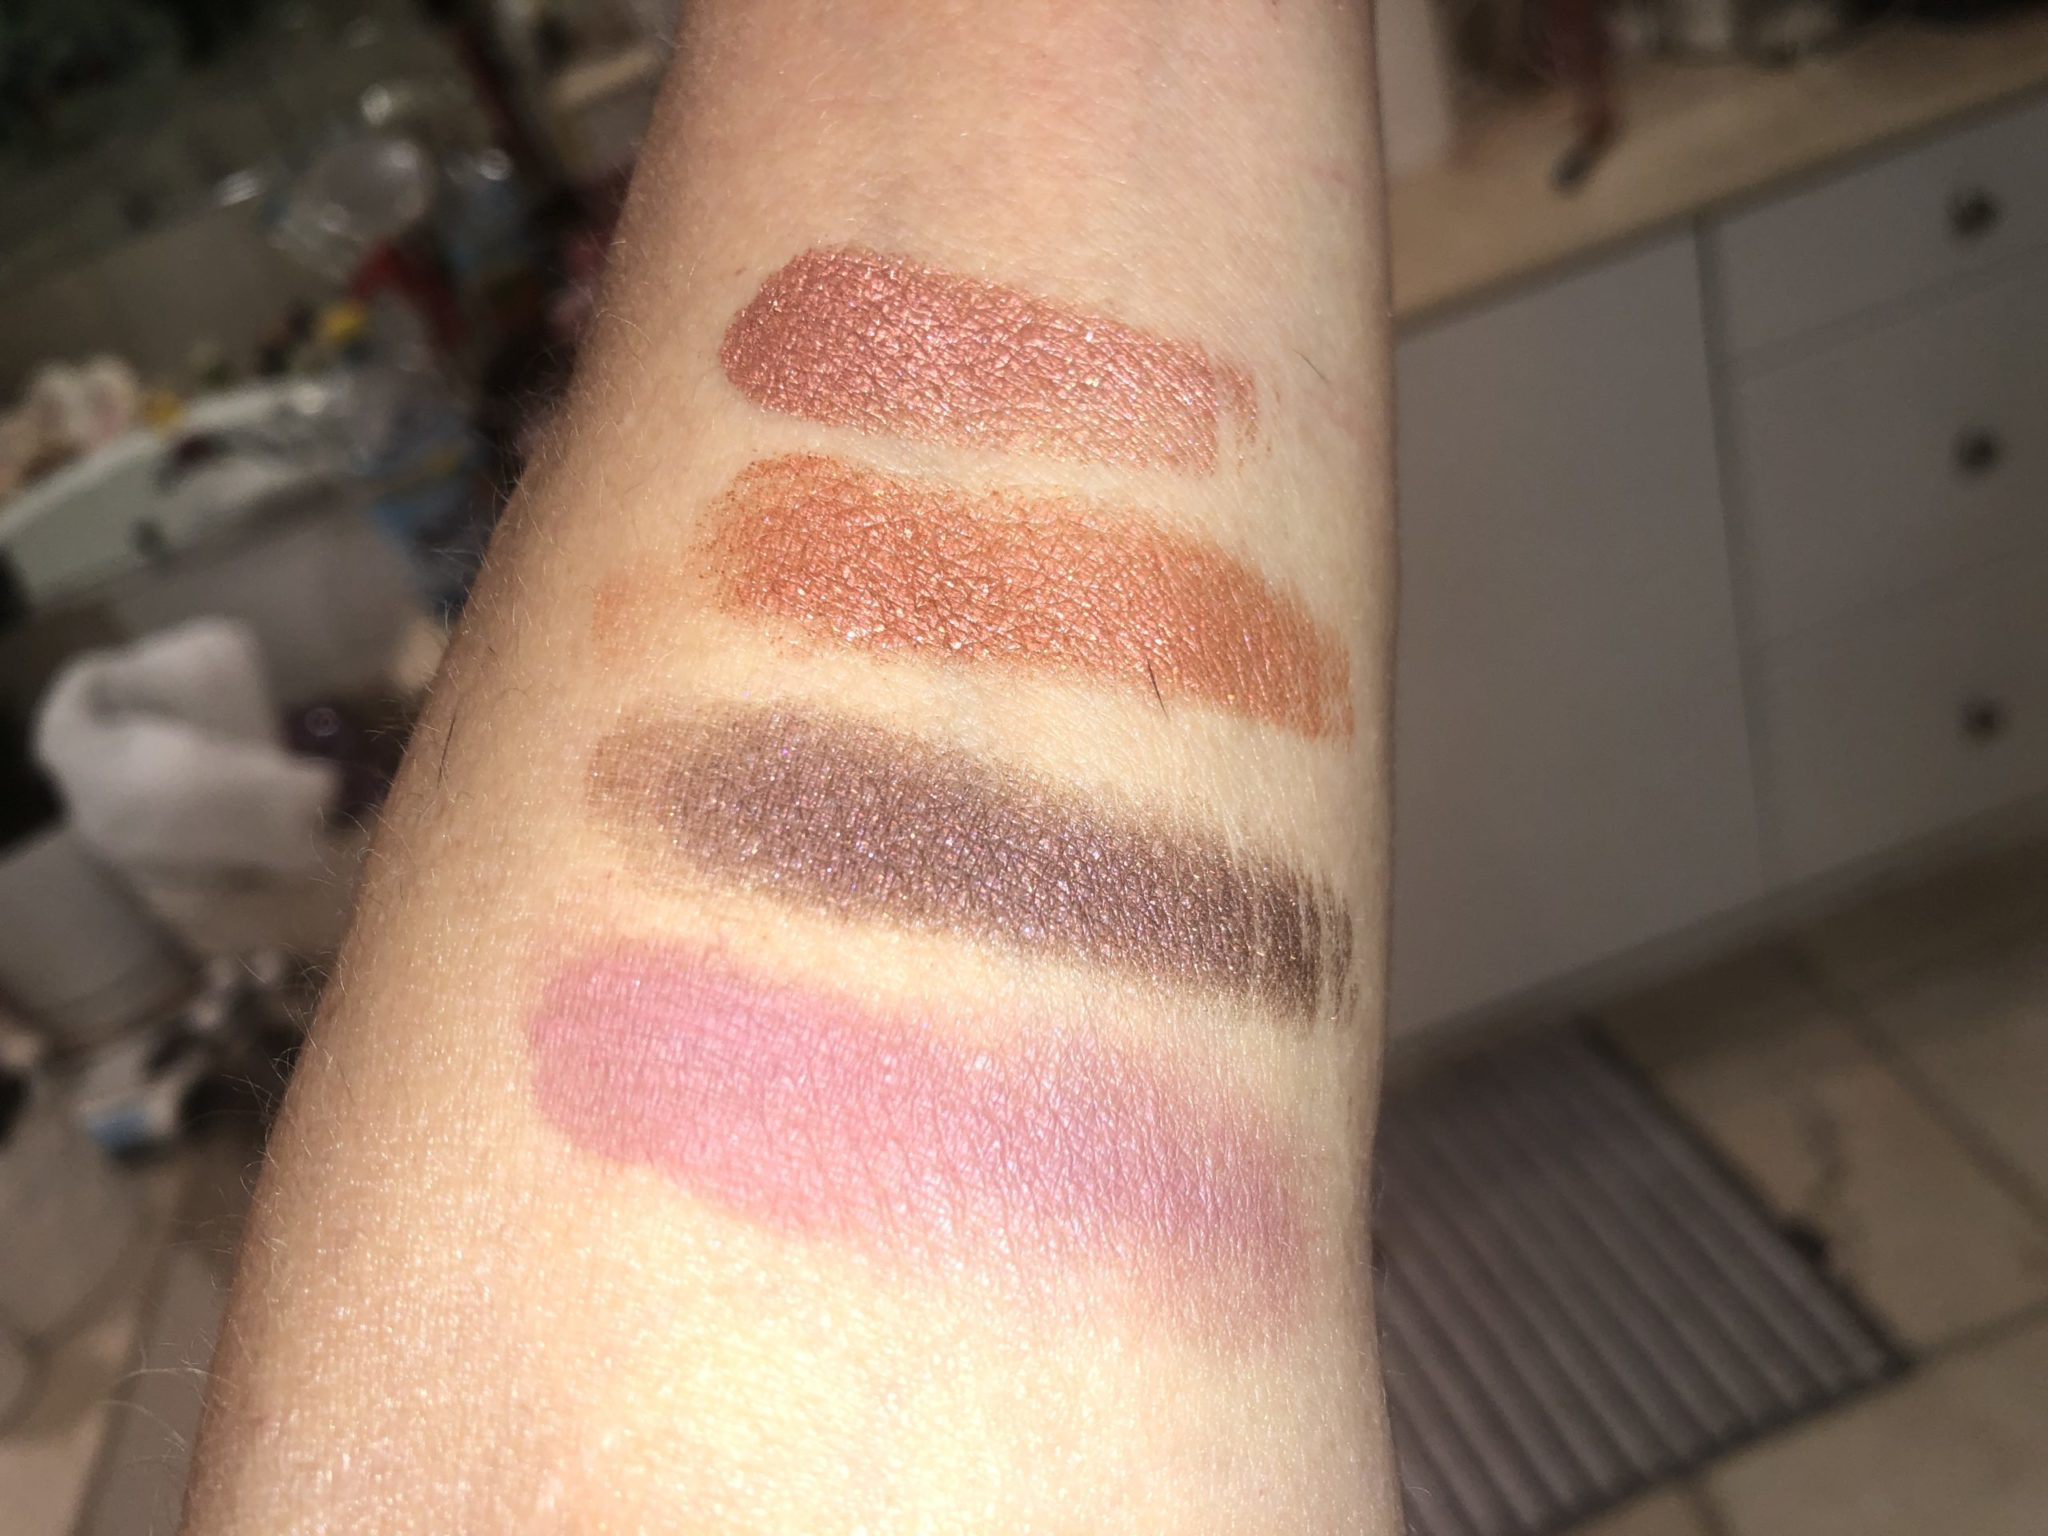 SWATCHES TOP TO BOTTOM: PINK RUST SHIMMER, SPARKLING AMBER, BLACK WITH RED SHIMMER, DUSTY ROSE MATTE